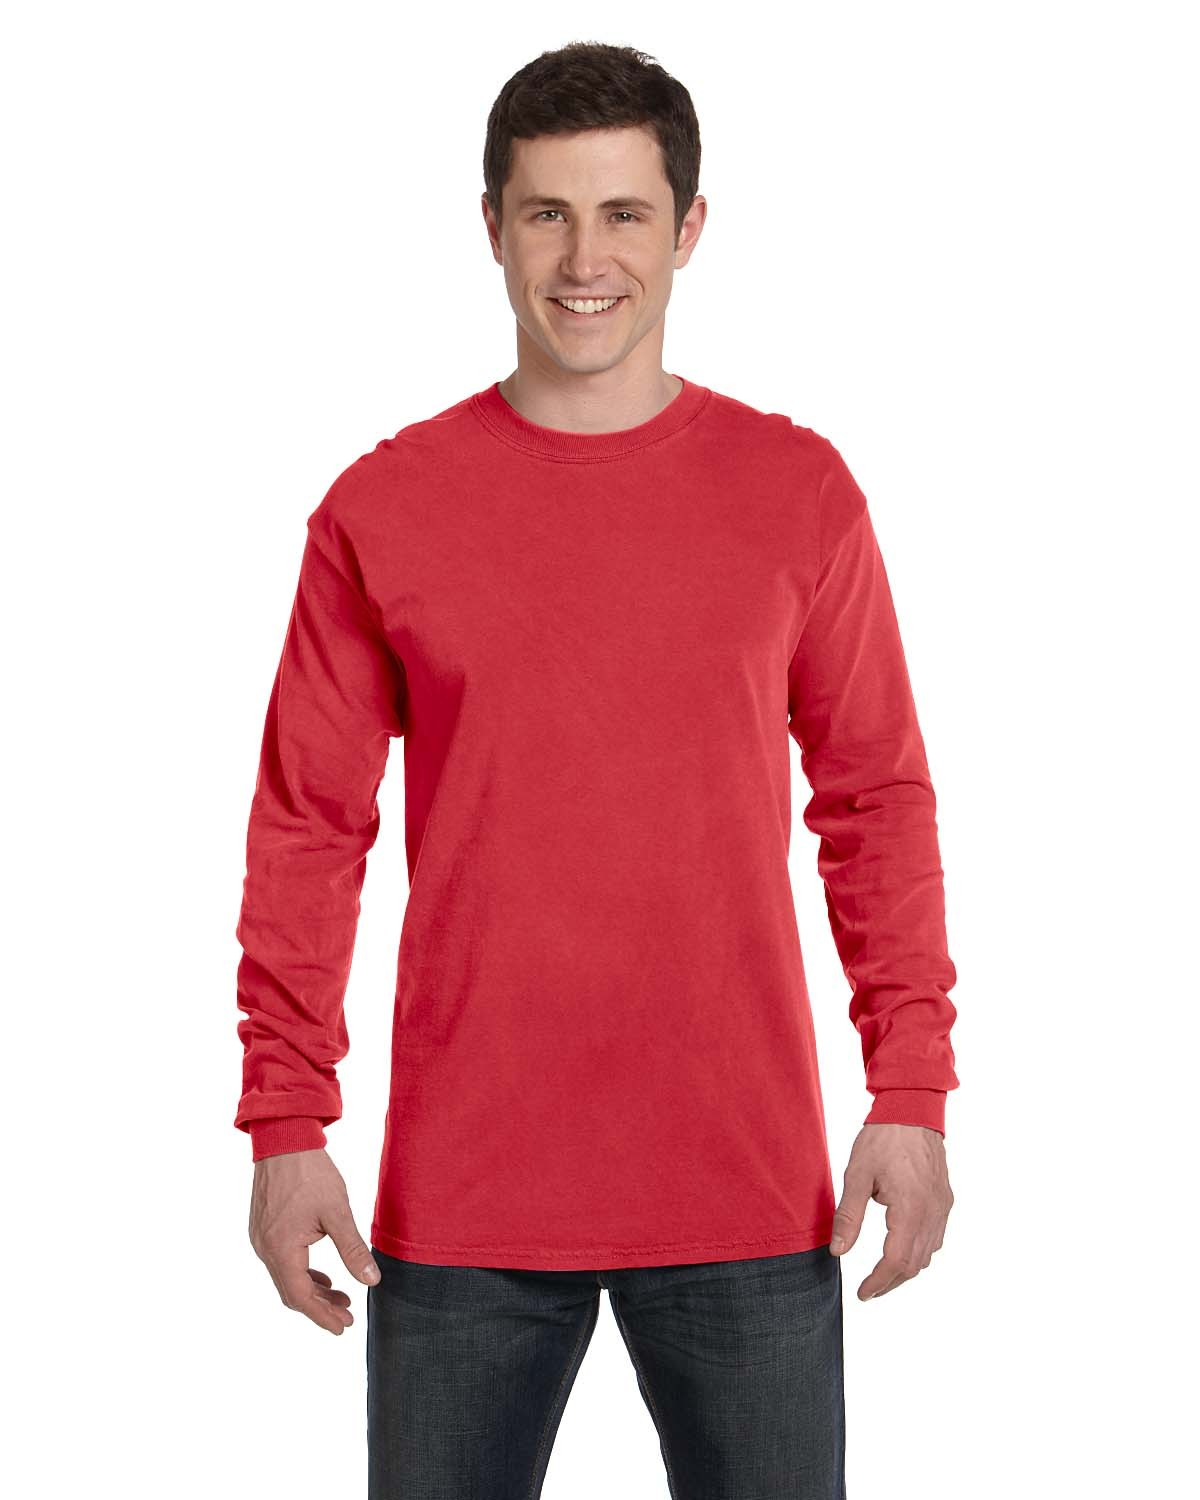 C6014 Comfort Colors RED